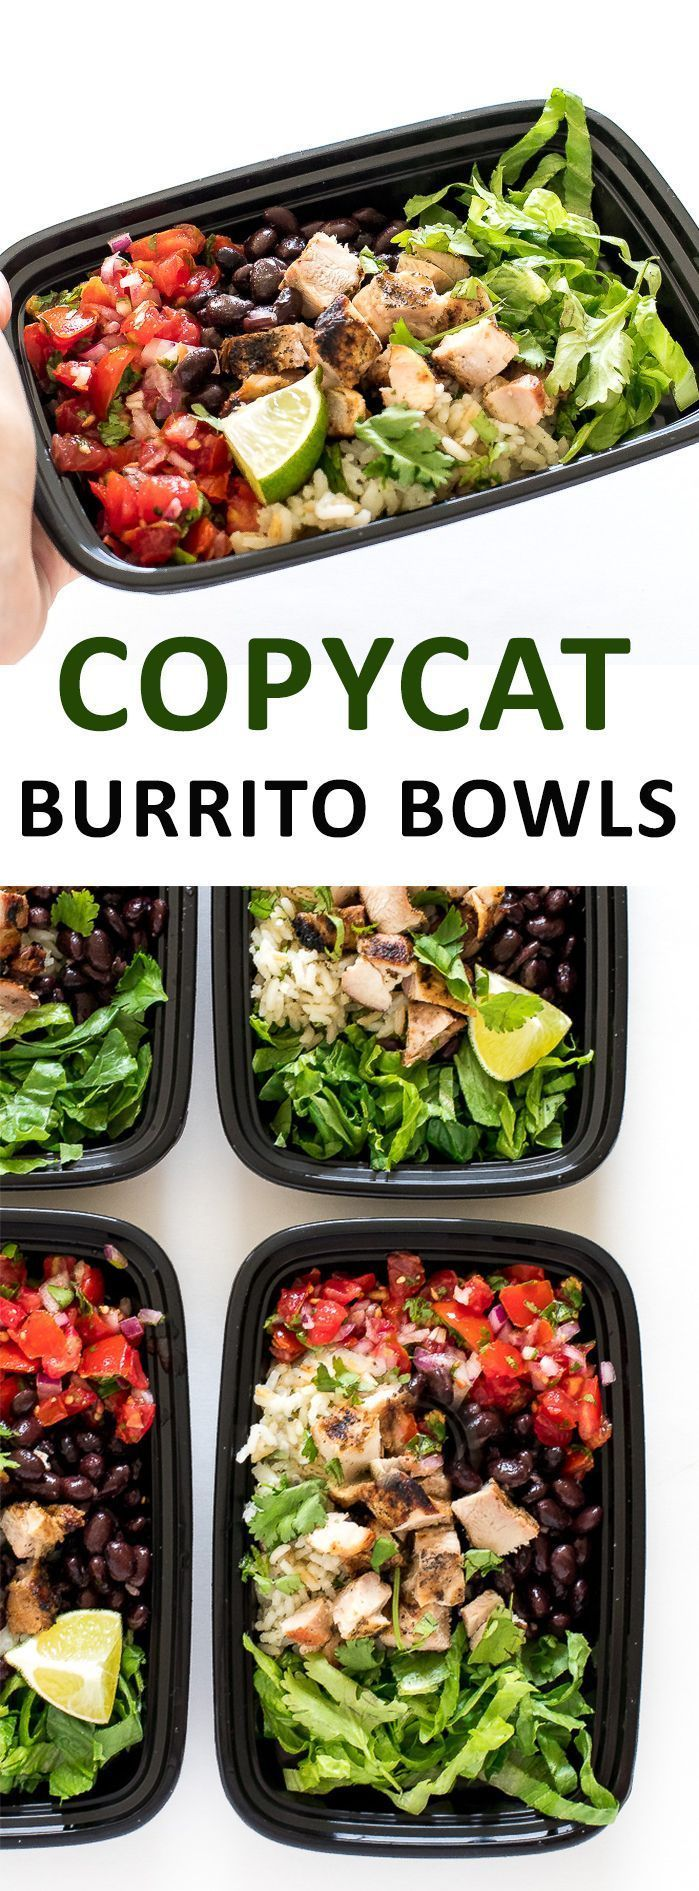 Super Easy Chicken Burrito Bowls. Made with homemade salsa, cilantro lime rice and grilled chipotle chicken. Perfect for meal prep!